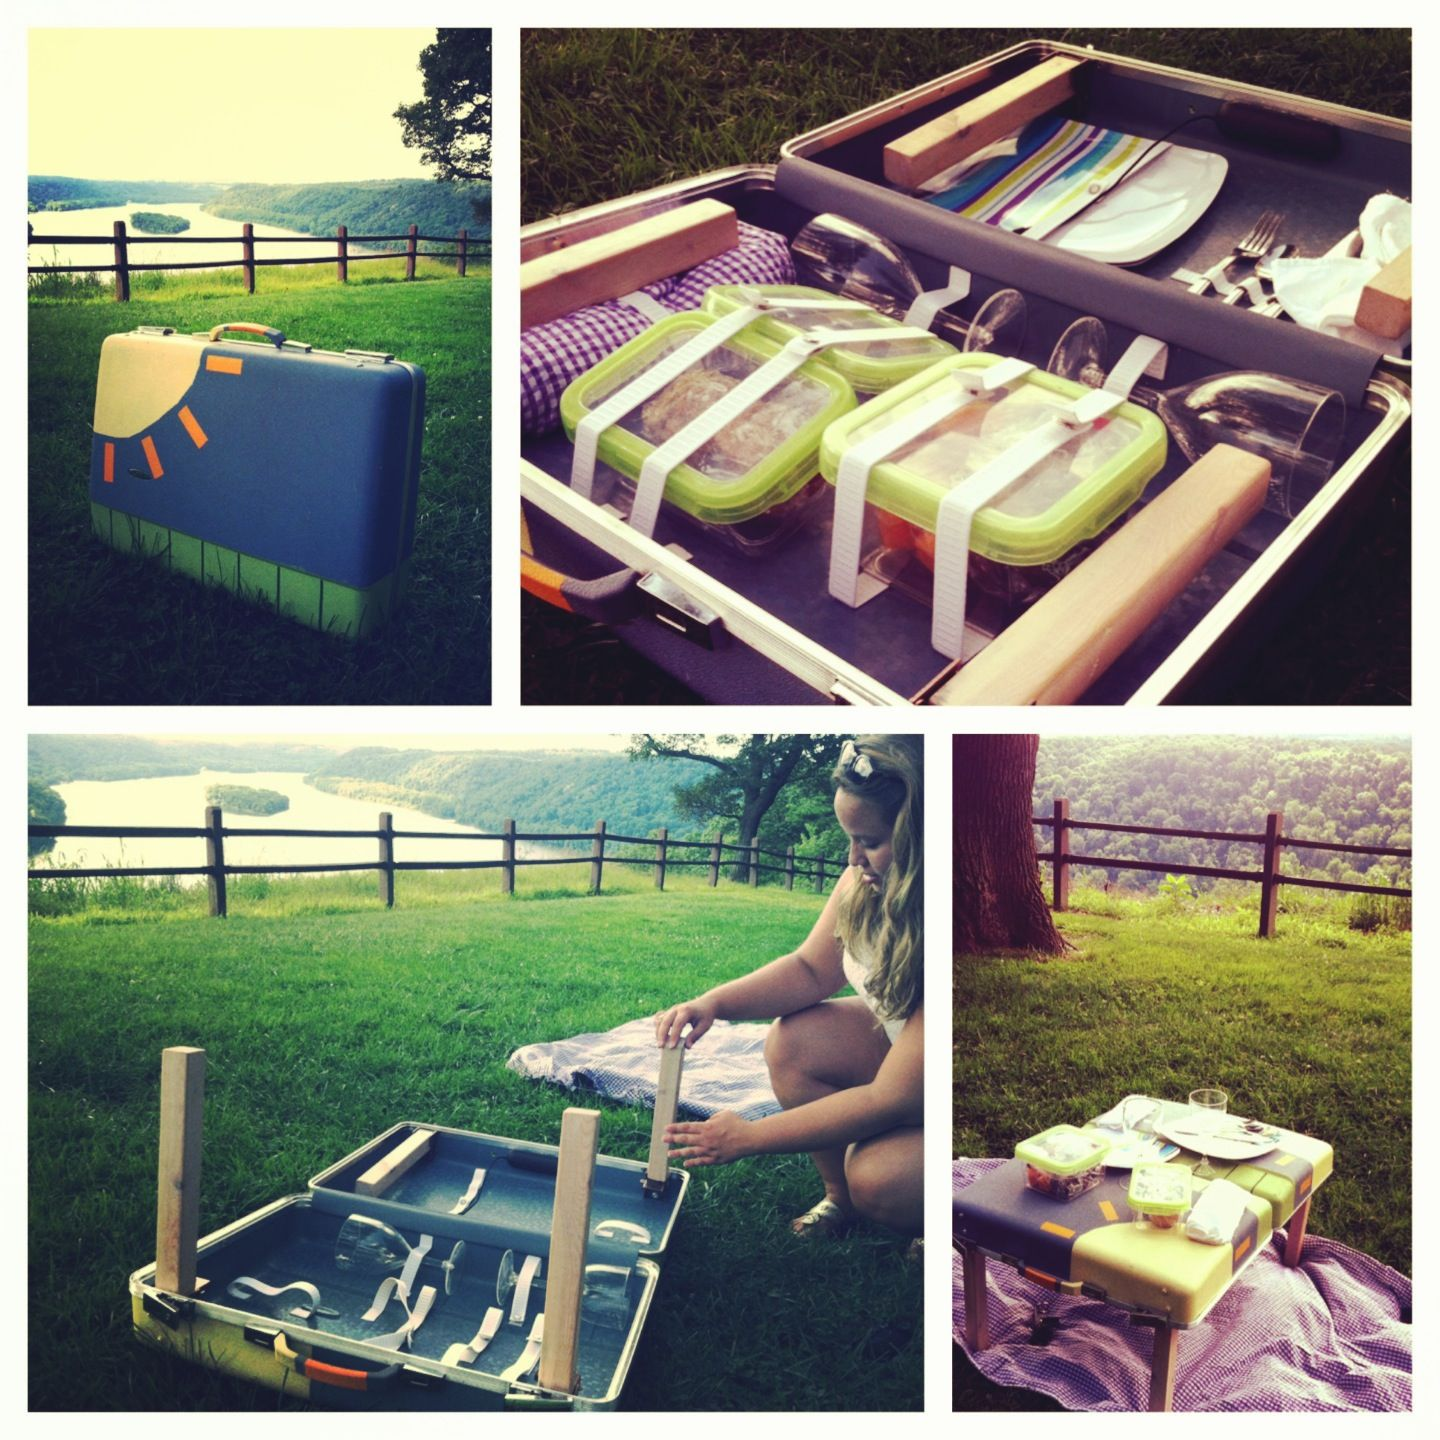 My Boyfriend Transformed An Old Suitcase Into A Travel Picnic Table Best Birthday Present Ever And Years Of Fun Outdoor Dates To Come